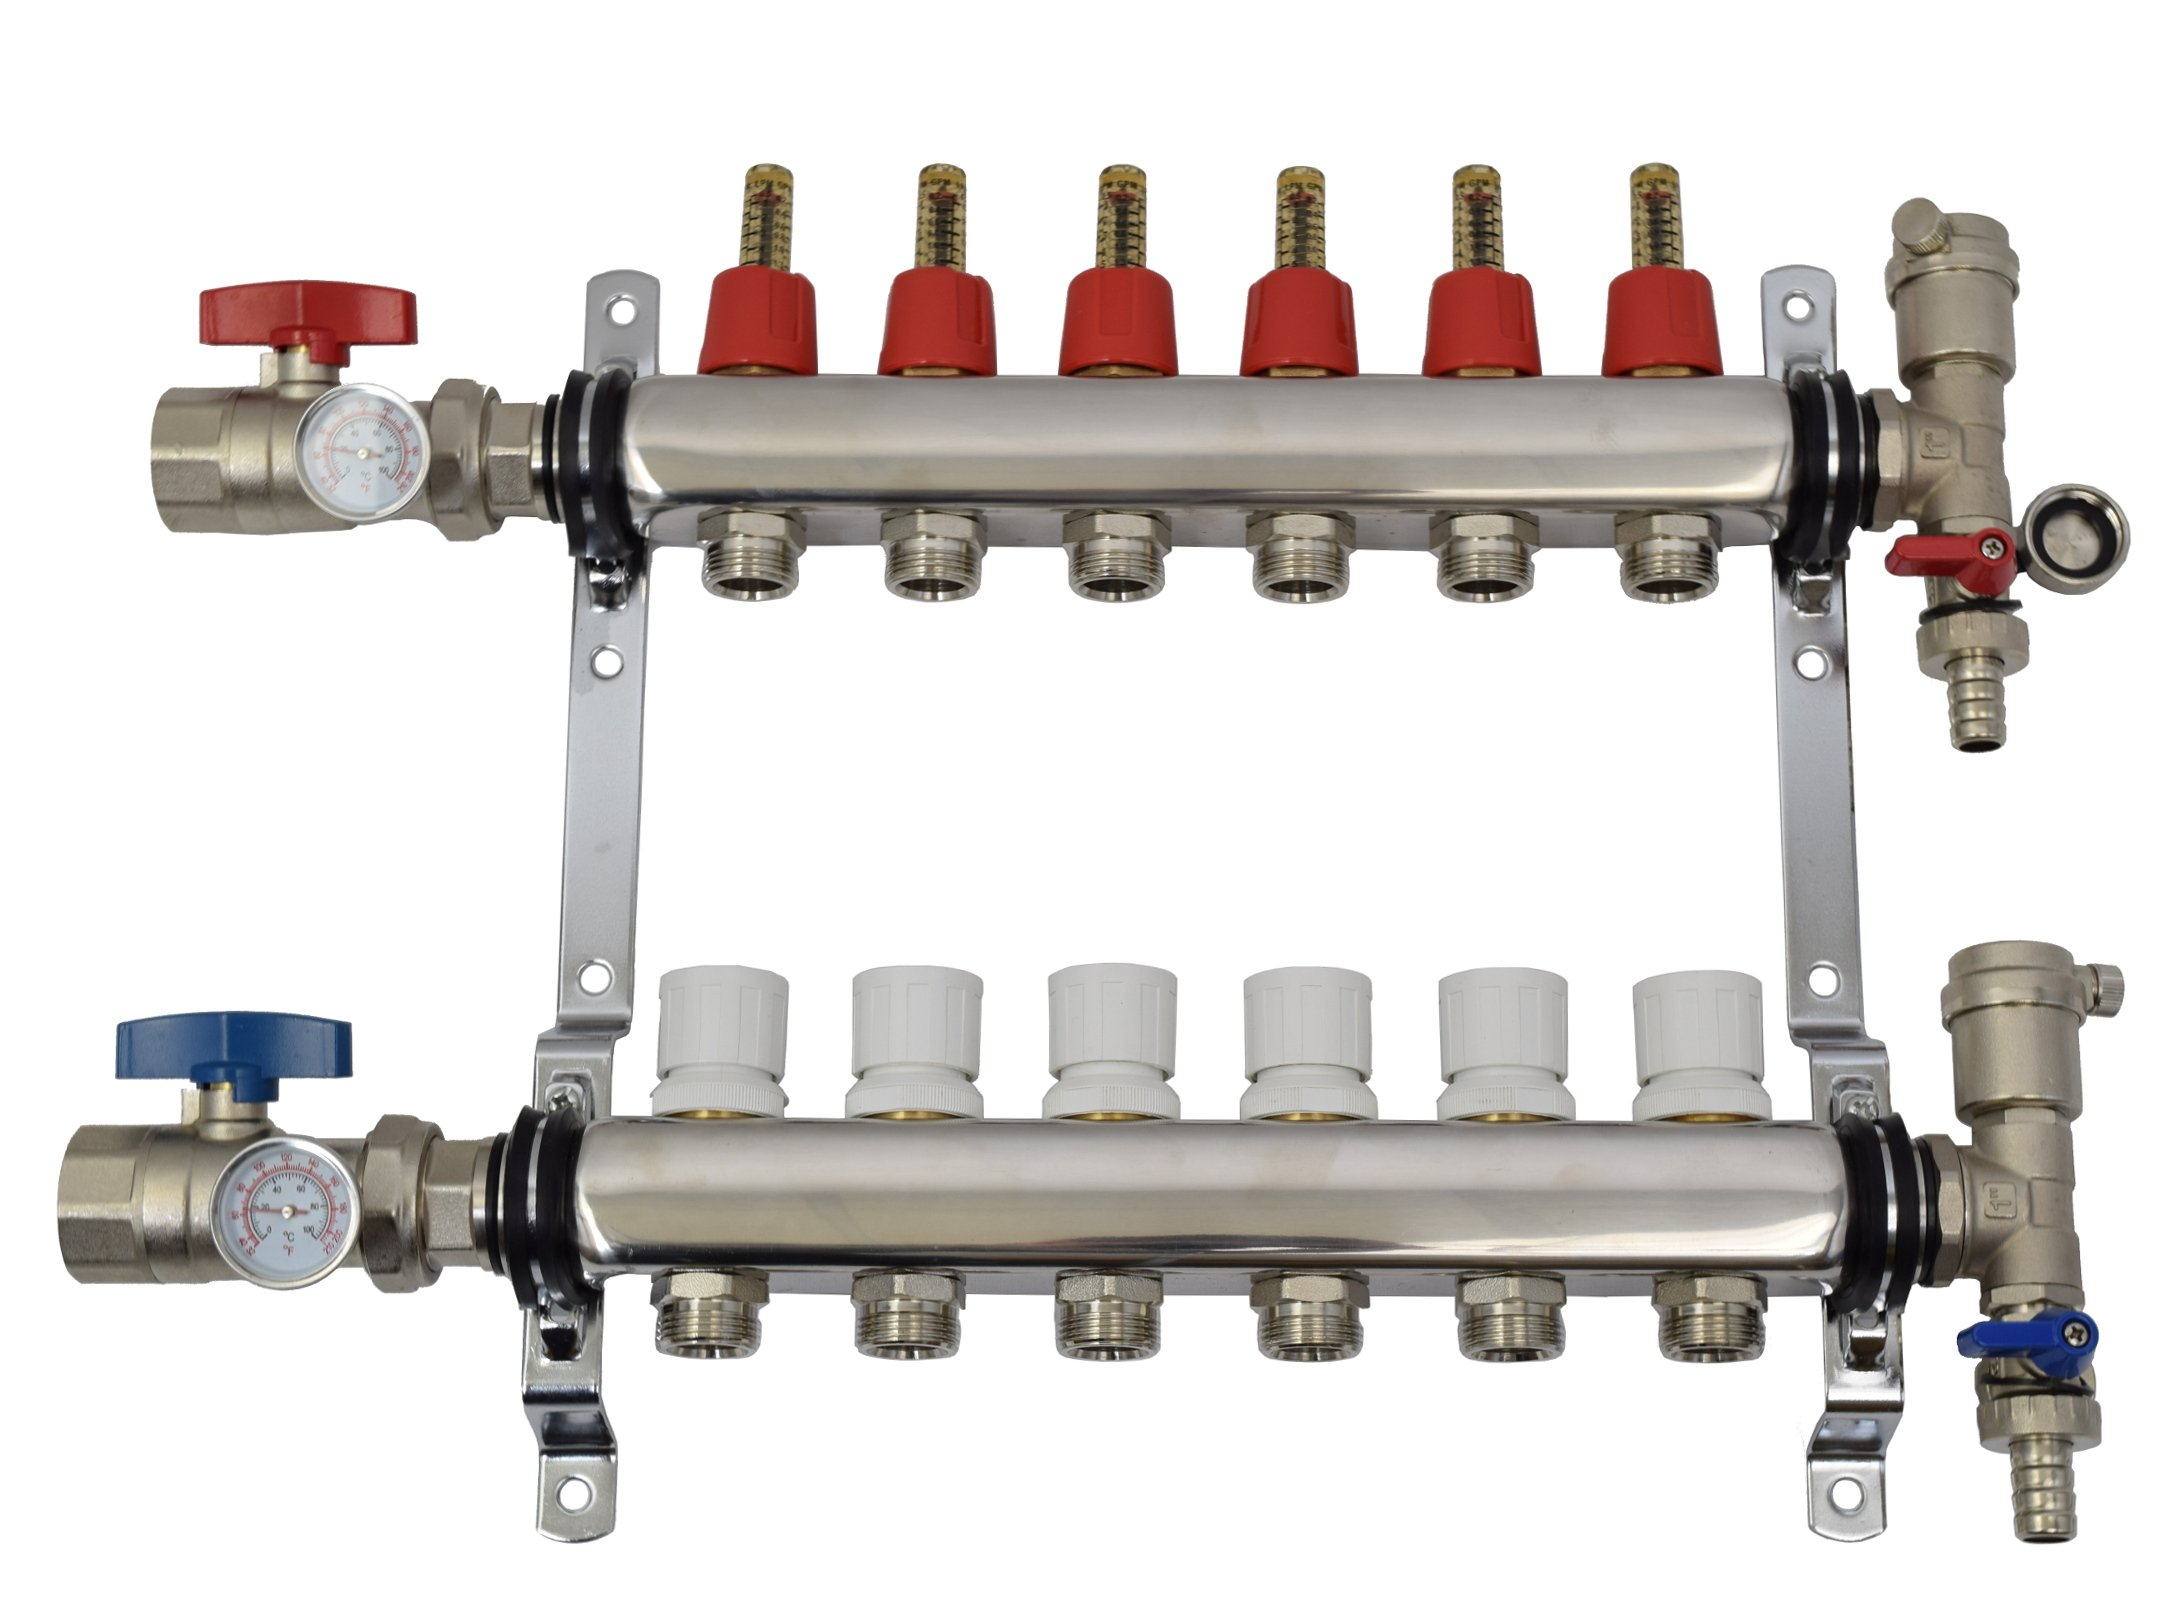 New 6 Loop 1/2'' Pex Manifold Stainless Steel Radiant Floor Heating Set / Six Branch Kit (PEX-M12-6)